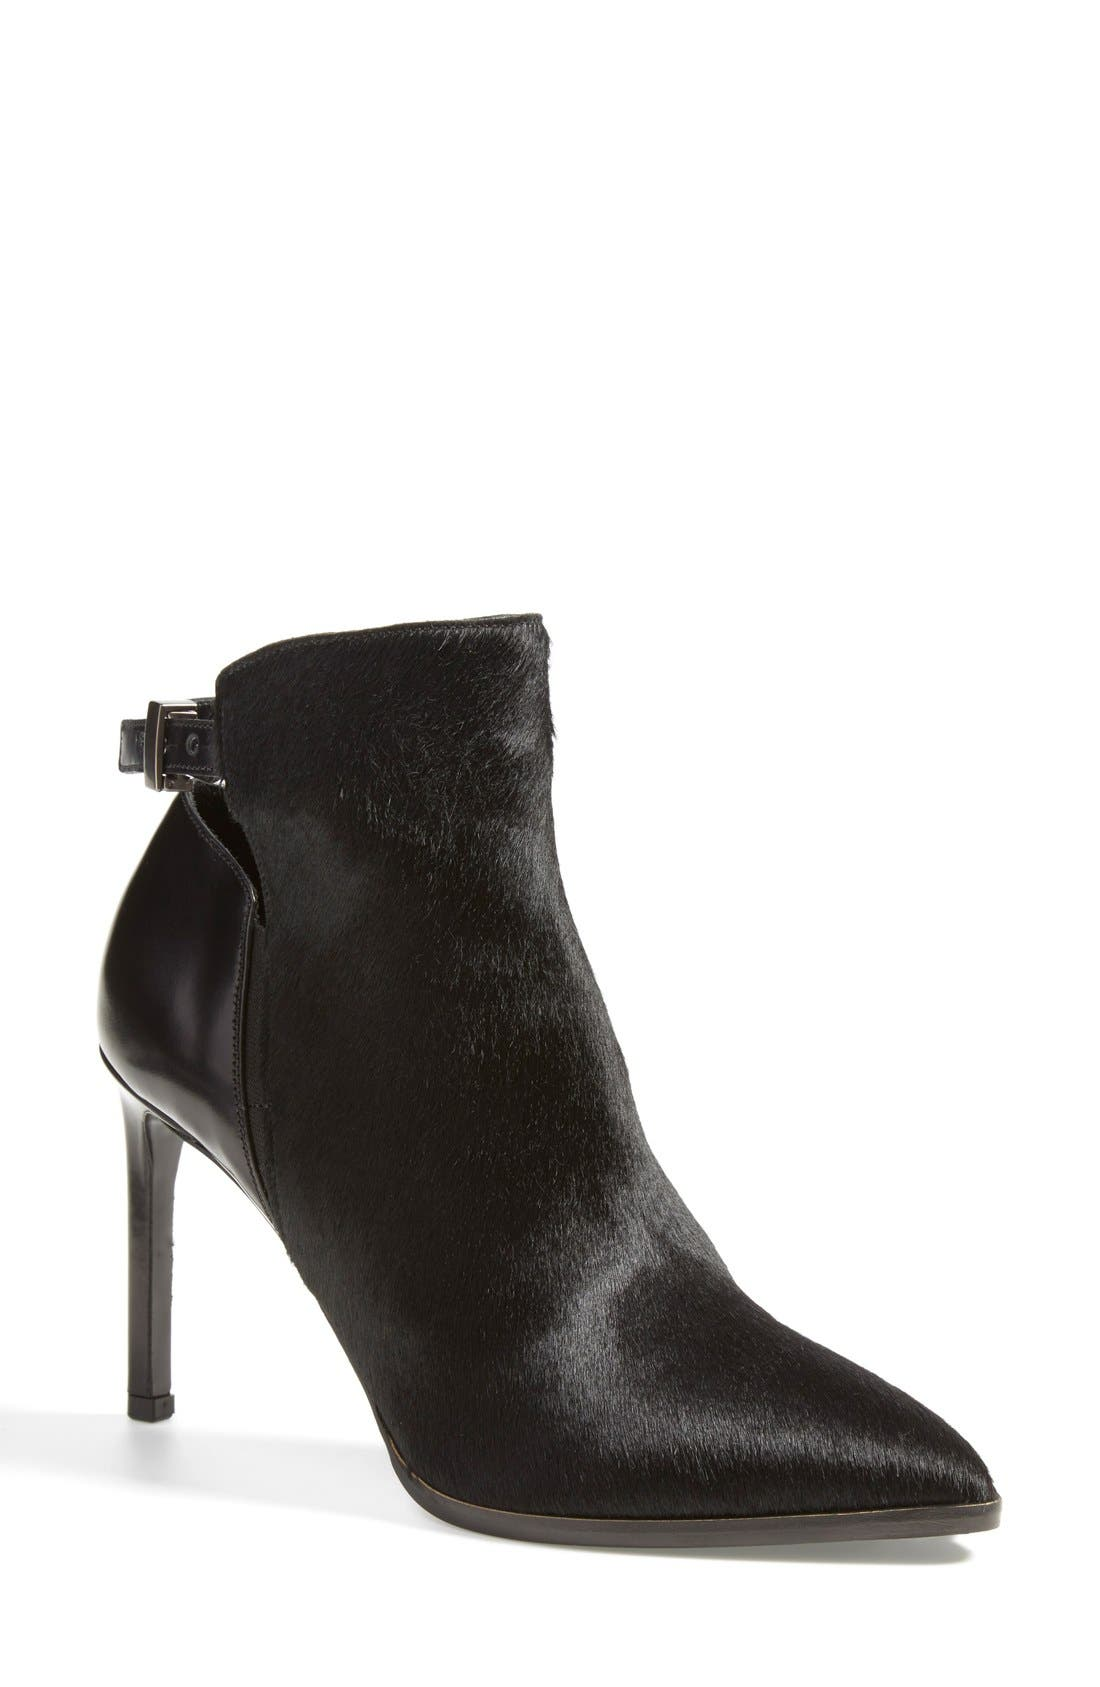 VINCE 'Calla' Leather & Calf Hair Bootie, Main, color, 003